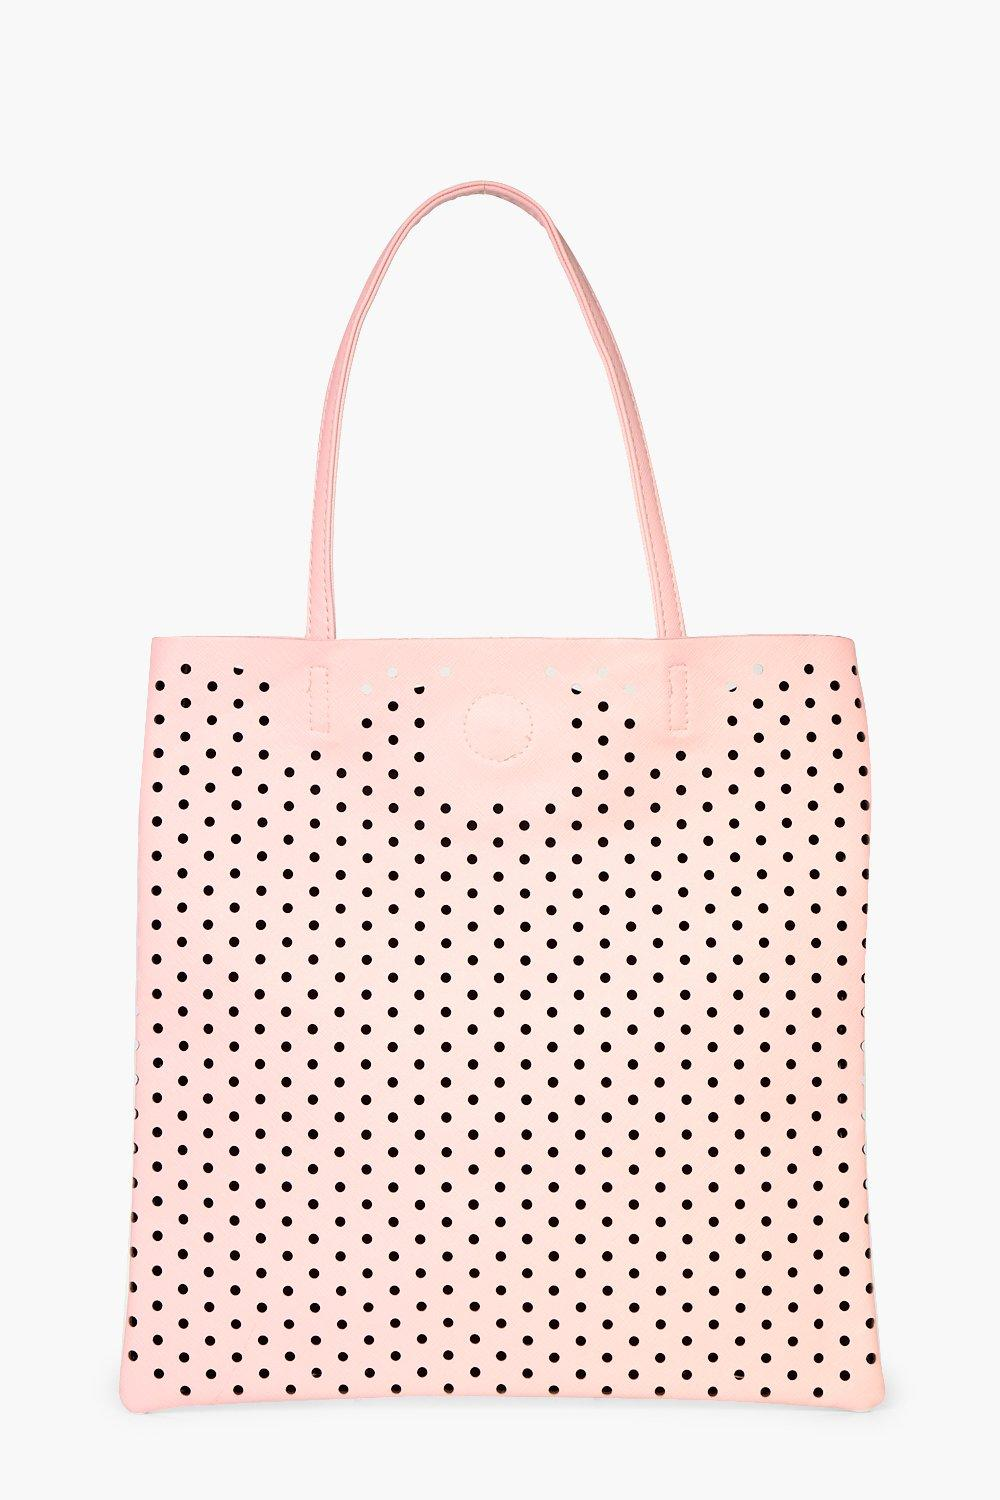 Lazercut Perforated Shopper Bag - pink - Macie Laz